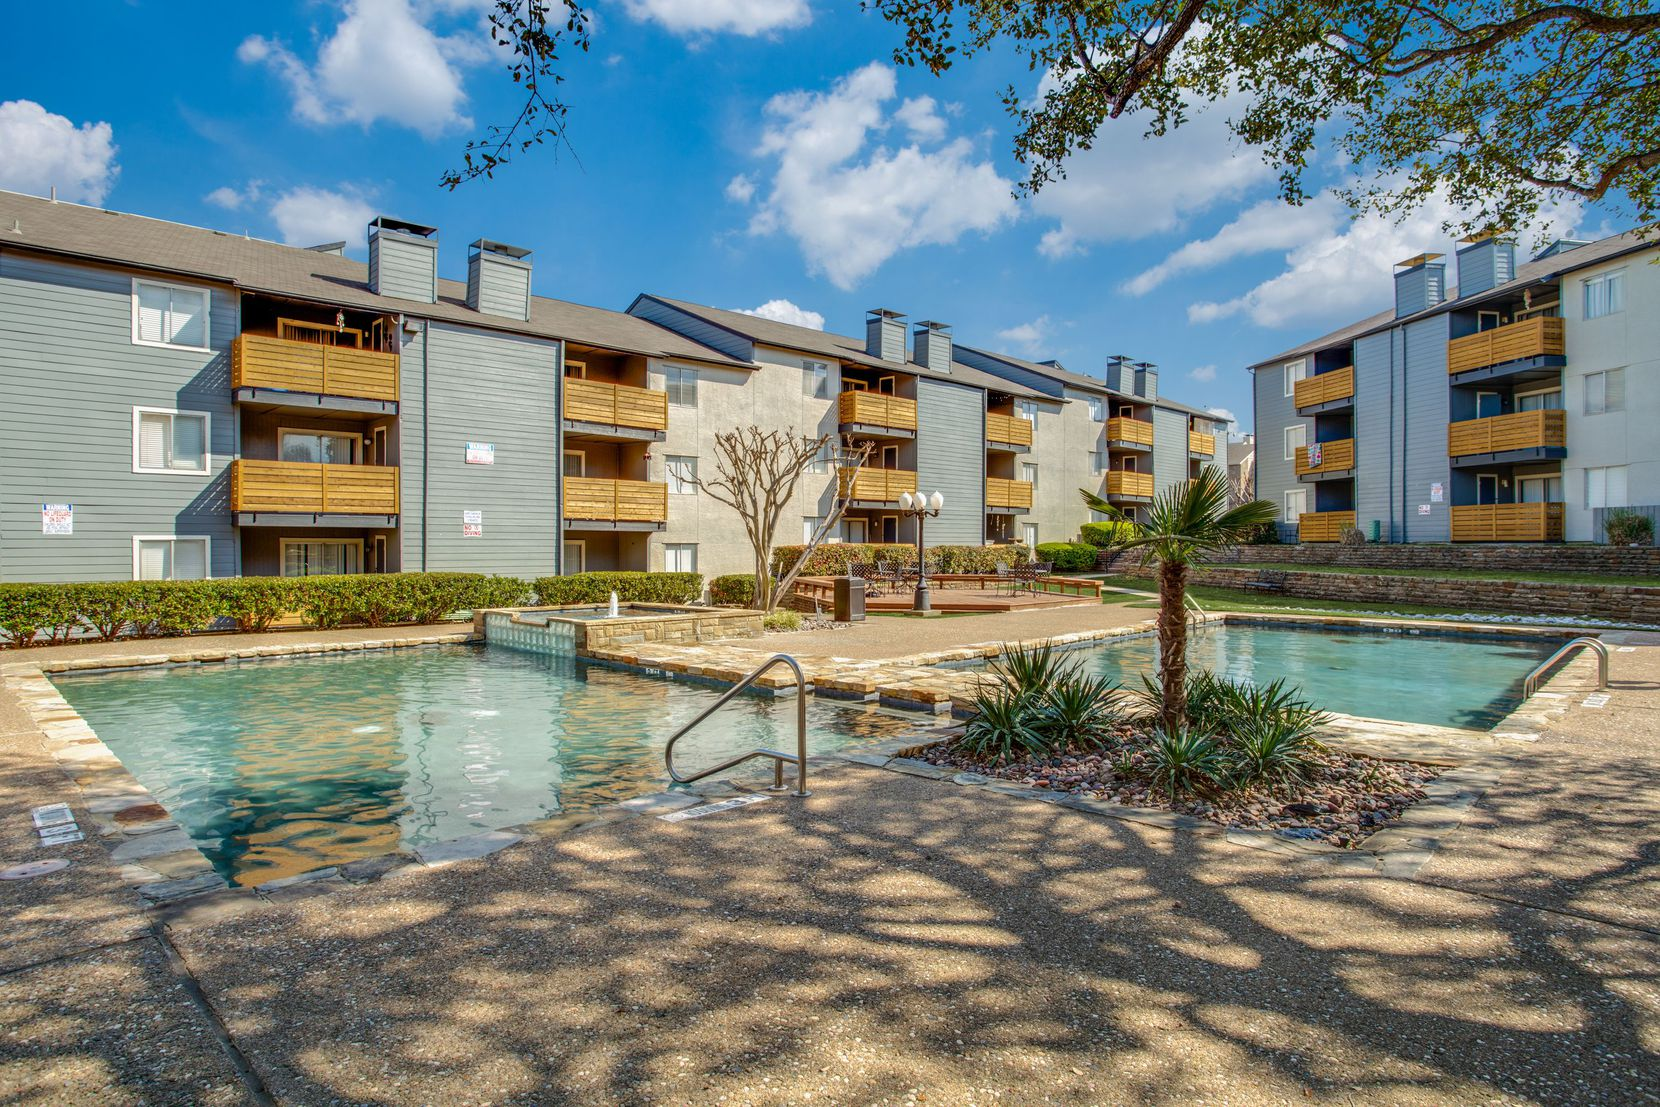 The Apex apartments are on Whitehurst Drive in Lake Highlands.